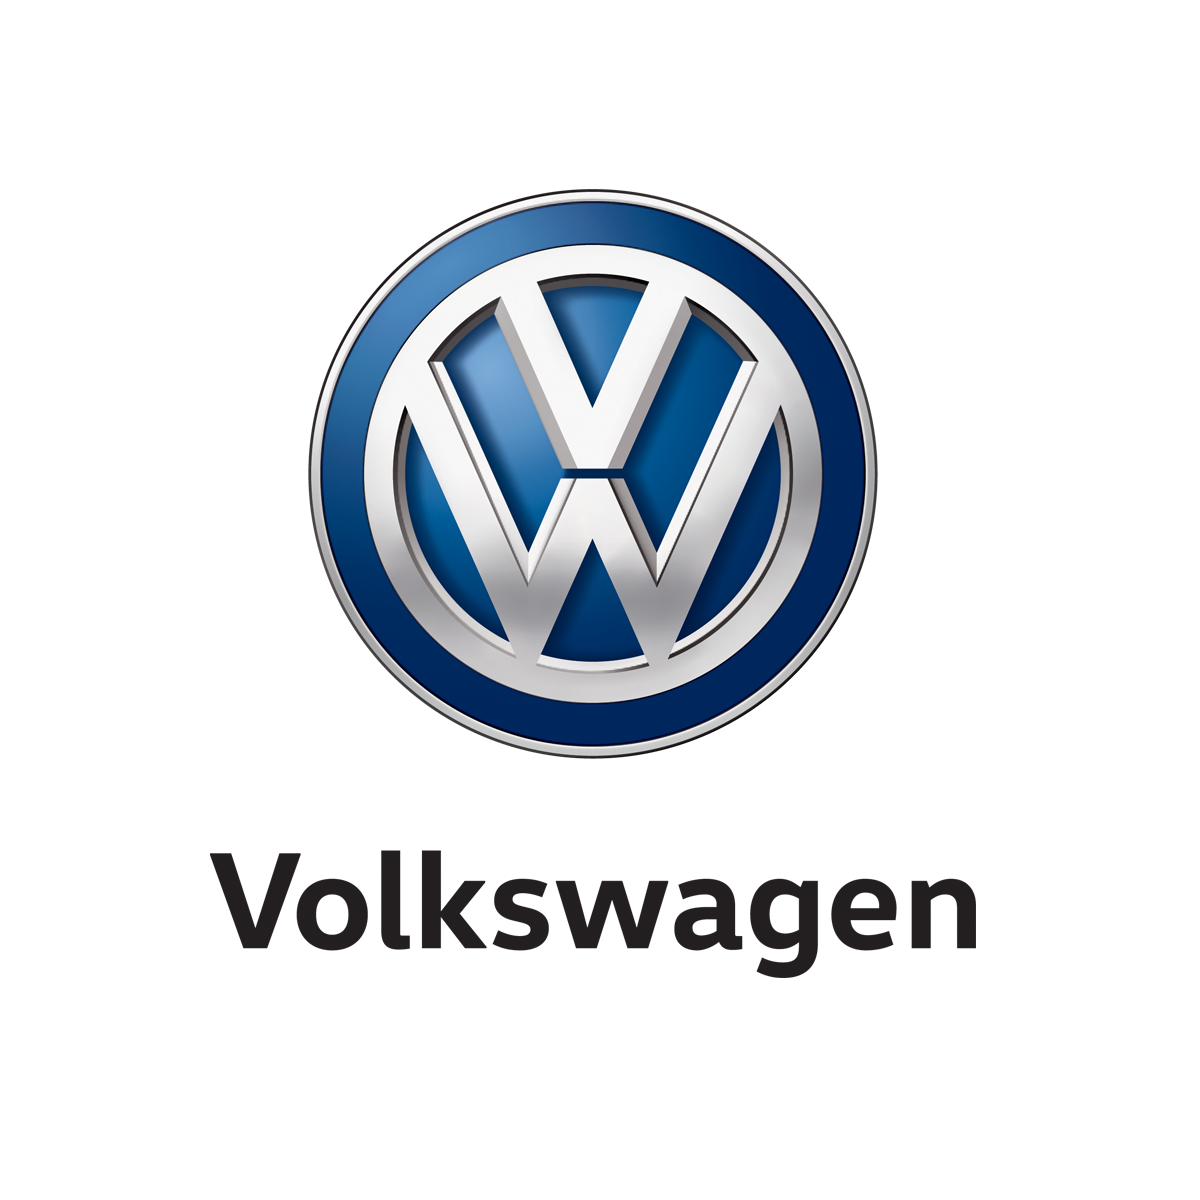 kisspng-volkswagen-group-car-volkswagen-beetle-volkswagen-cars-logo-brands-5ab51e308c8fb7.9383280615218191845758